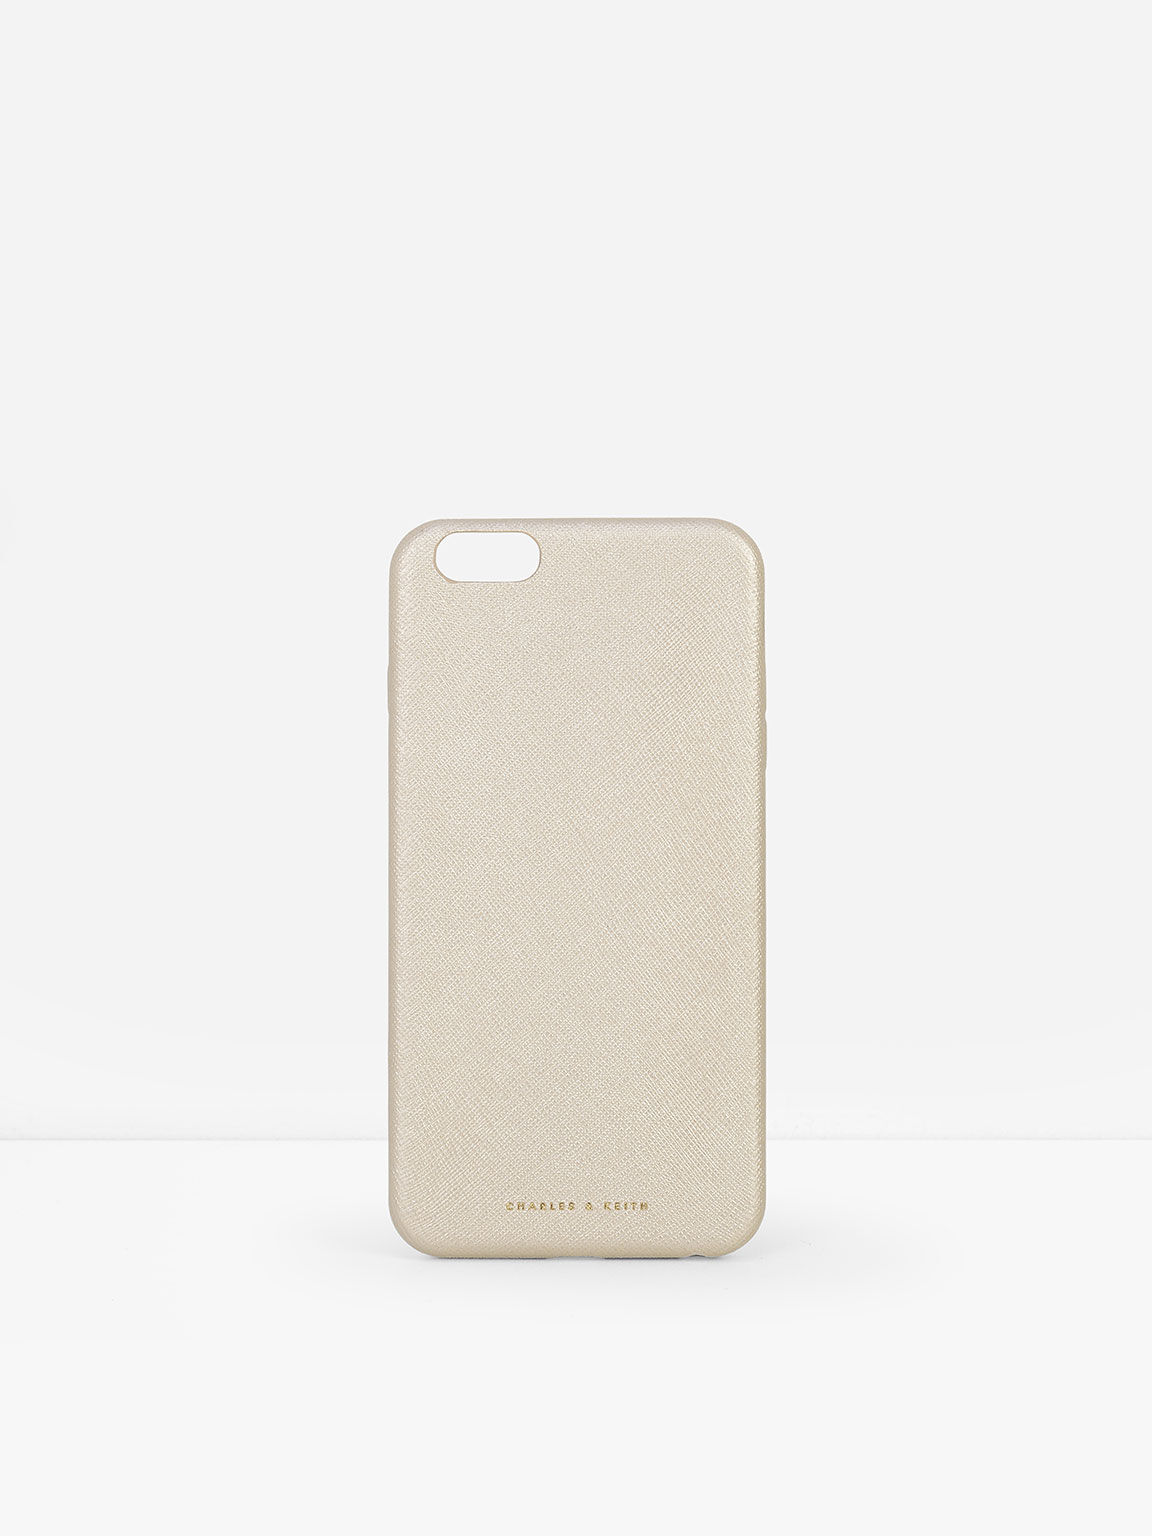 Classic Iphone 6 Plus Cover, Gold, hi-res